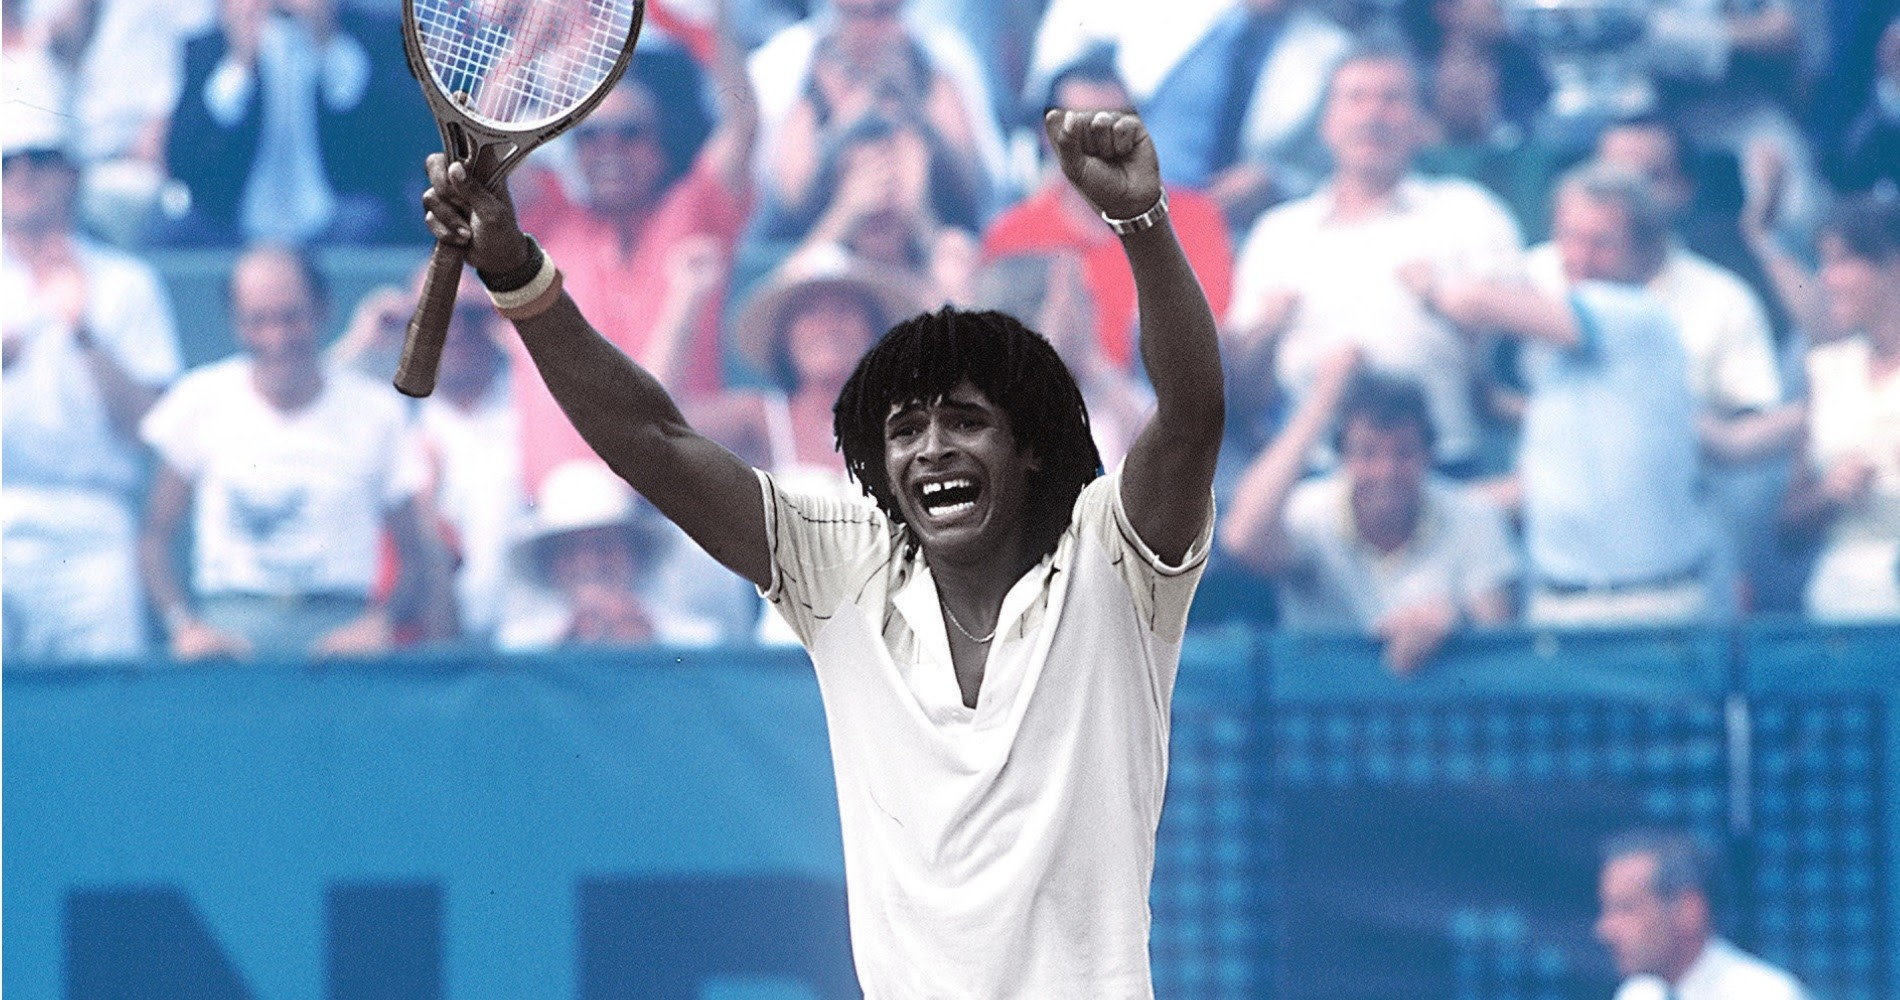 Yannick Noah won the French Open on June, 5, 1983.